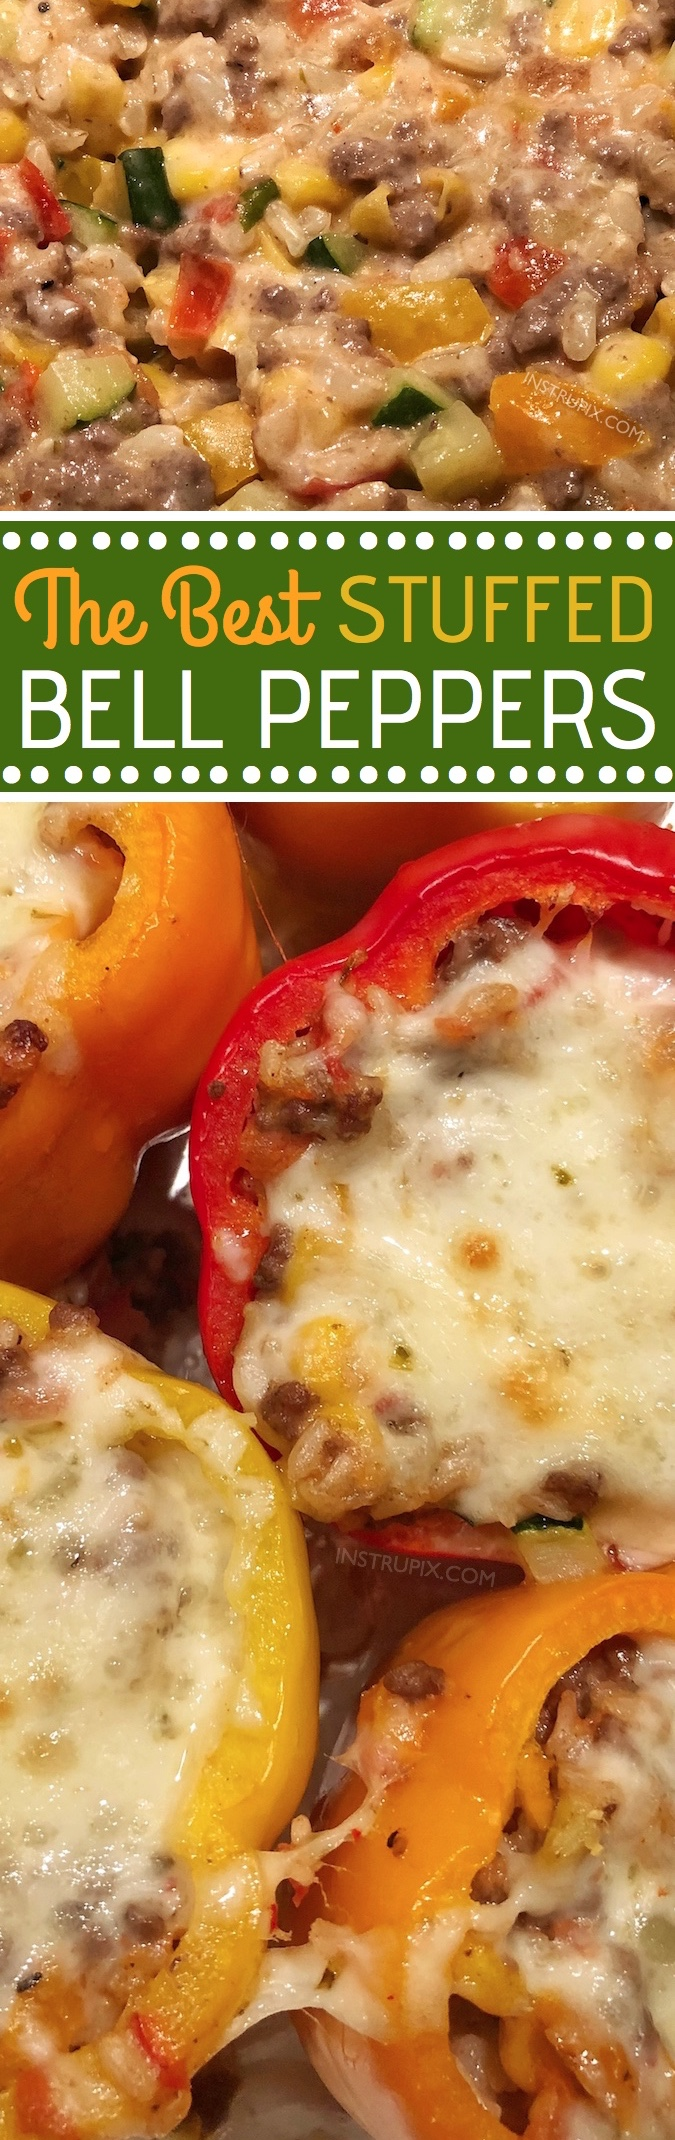 Easy and quick dinner recipe! The BEST easy stuffed bell peppers recipe, ever! Using ground beef (or ground turkey), cheese, garlic, zucchini, corn, tomatoes and rice! Gluten free! Bake them in the oven, and enjoy this easy and healthy dinner recipe for the family. Instrupix.com